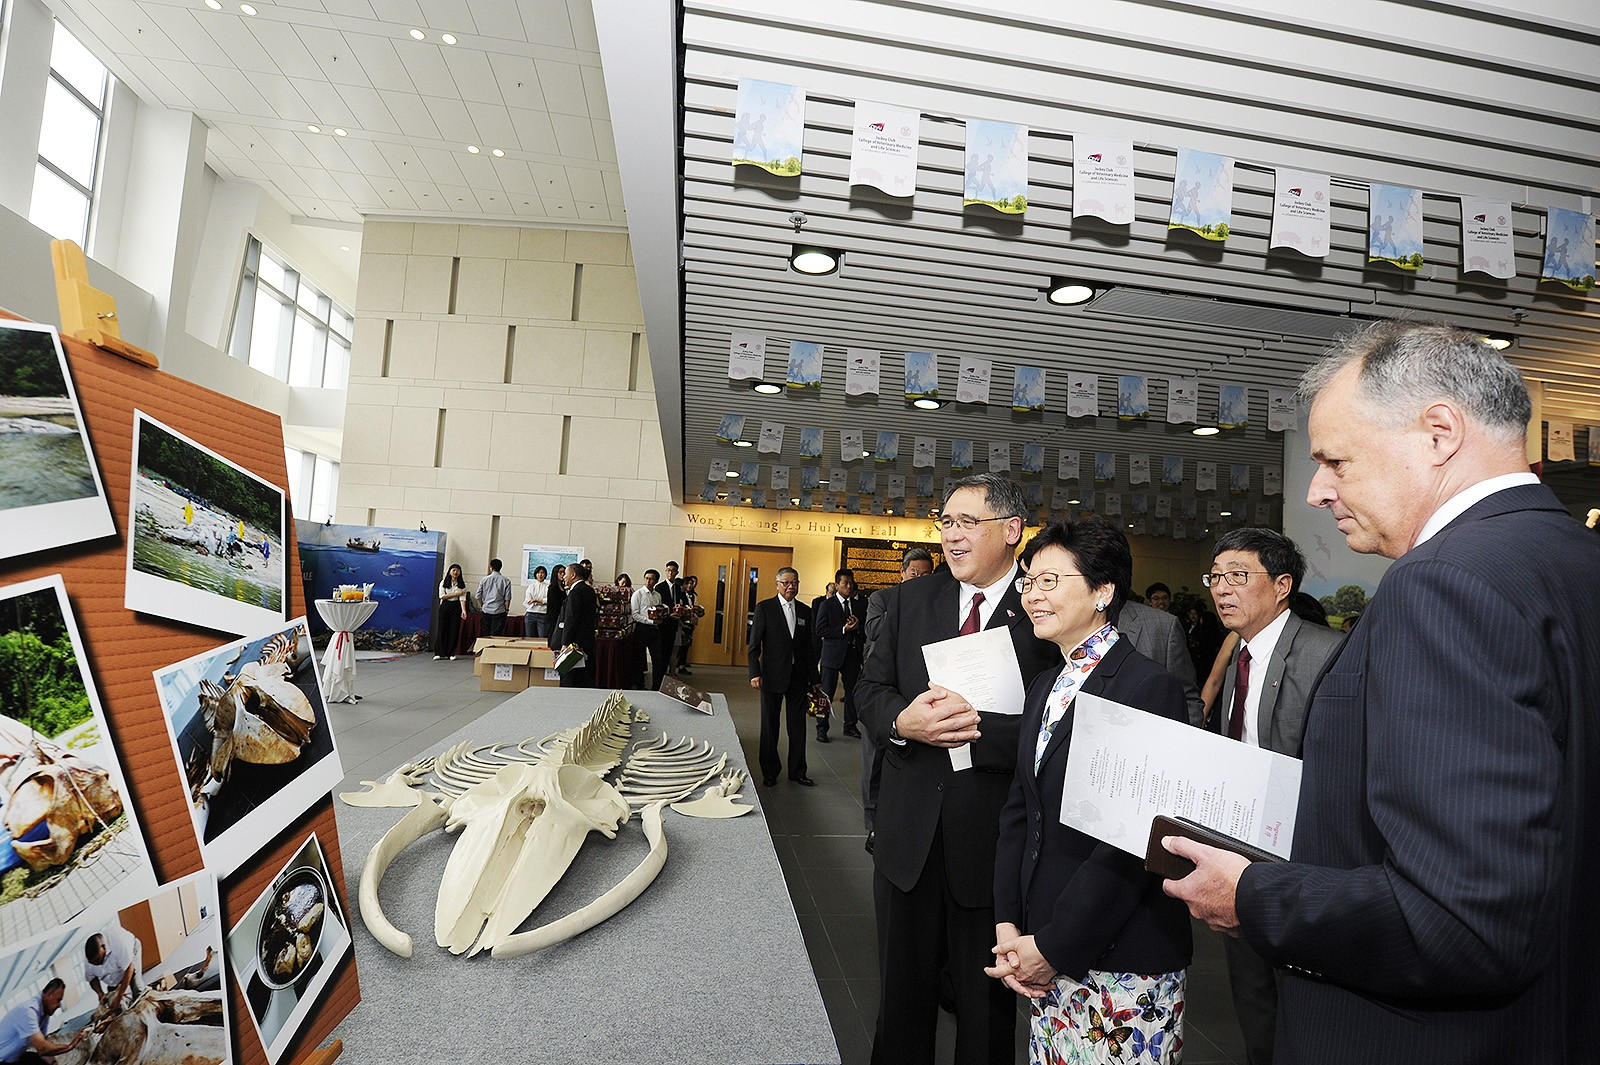 Mrs Carrie Lam (2nd on left) views an exhibition during the naming ceremony for the Jockey Club College of Veterinary Medicine and Life Sciences.